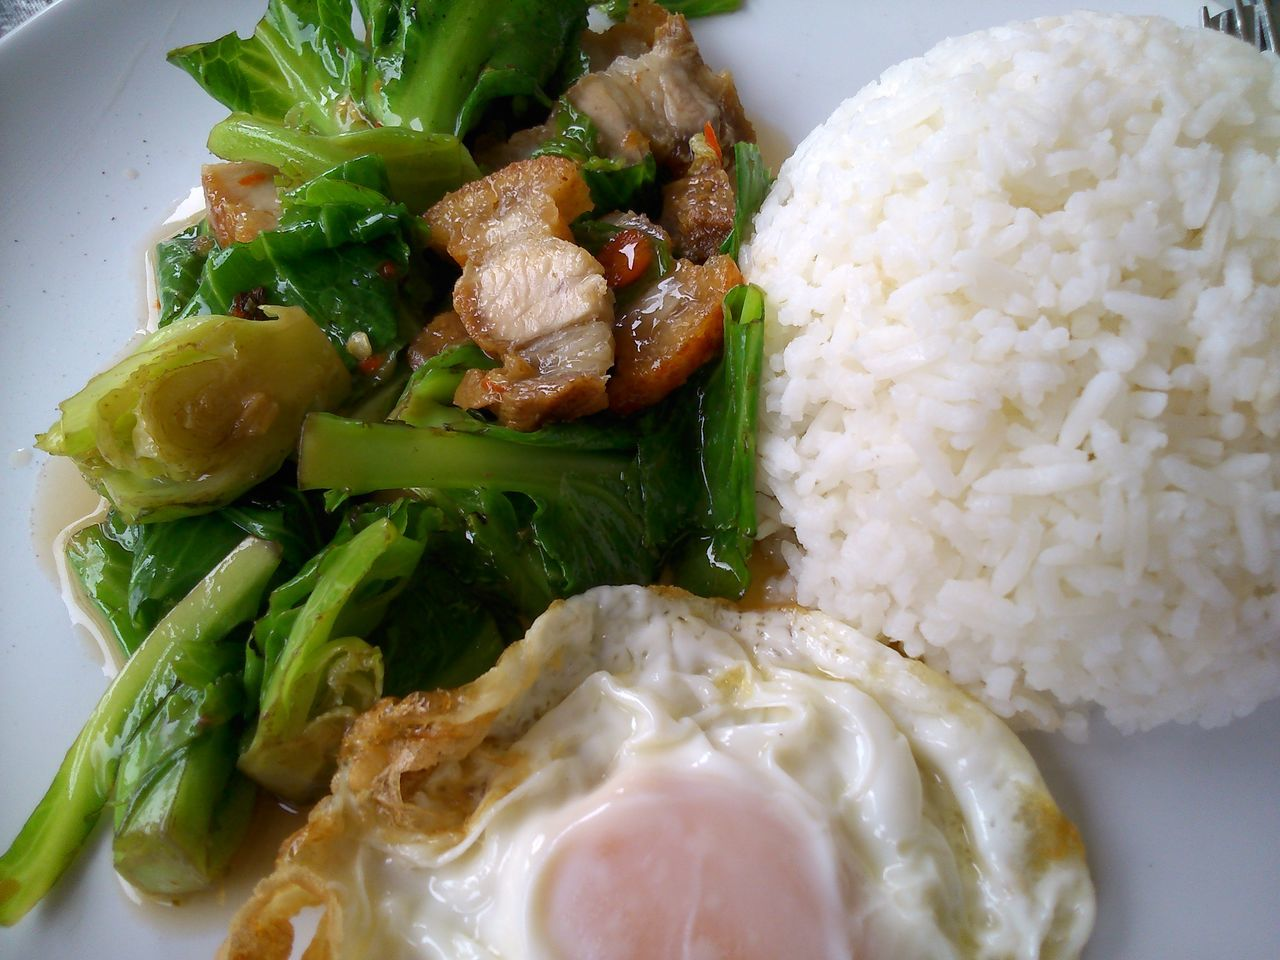 healthy eating, food and drink, food, ready-to-eat, serving size, vegetable, rice - food staple, plate, freshness, indoors, no people, close-up, rice, mashed potatoes, fried rice, day